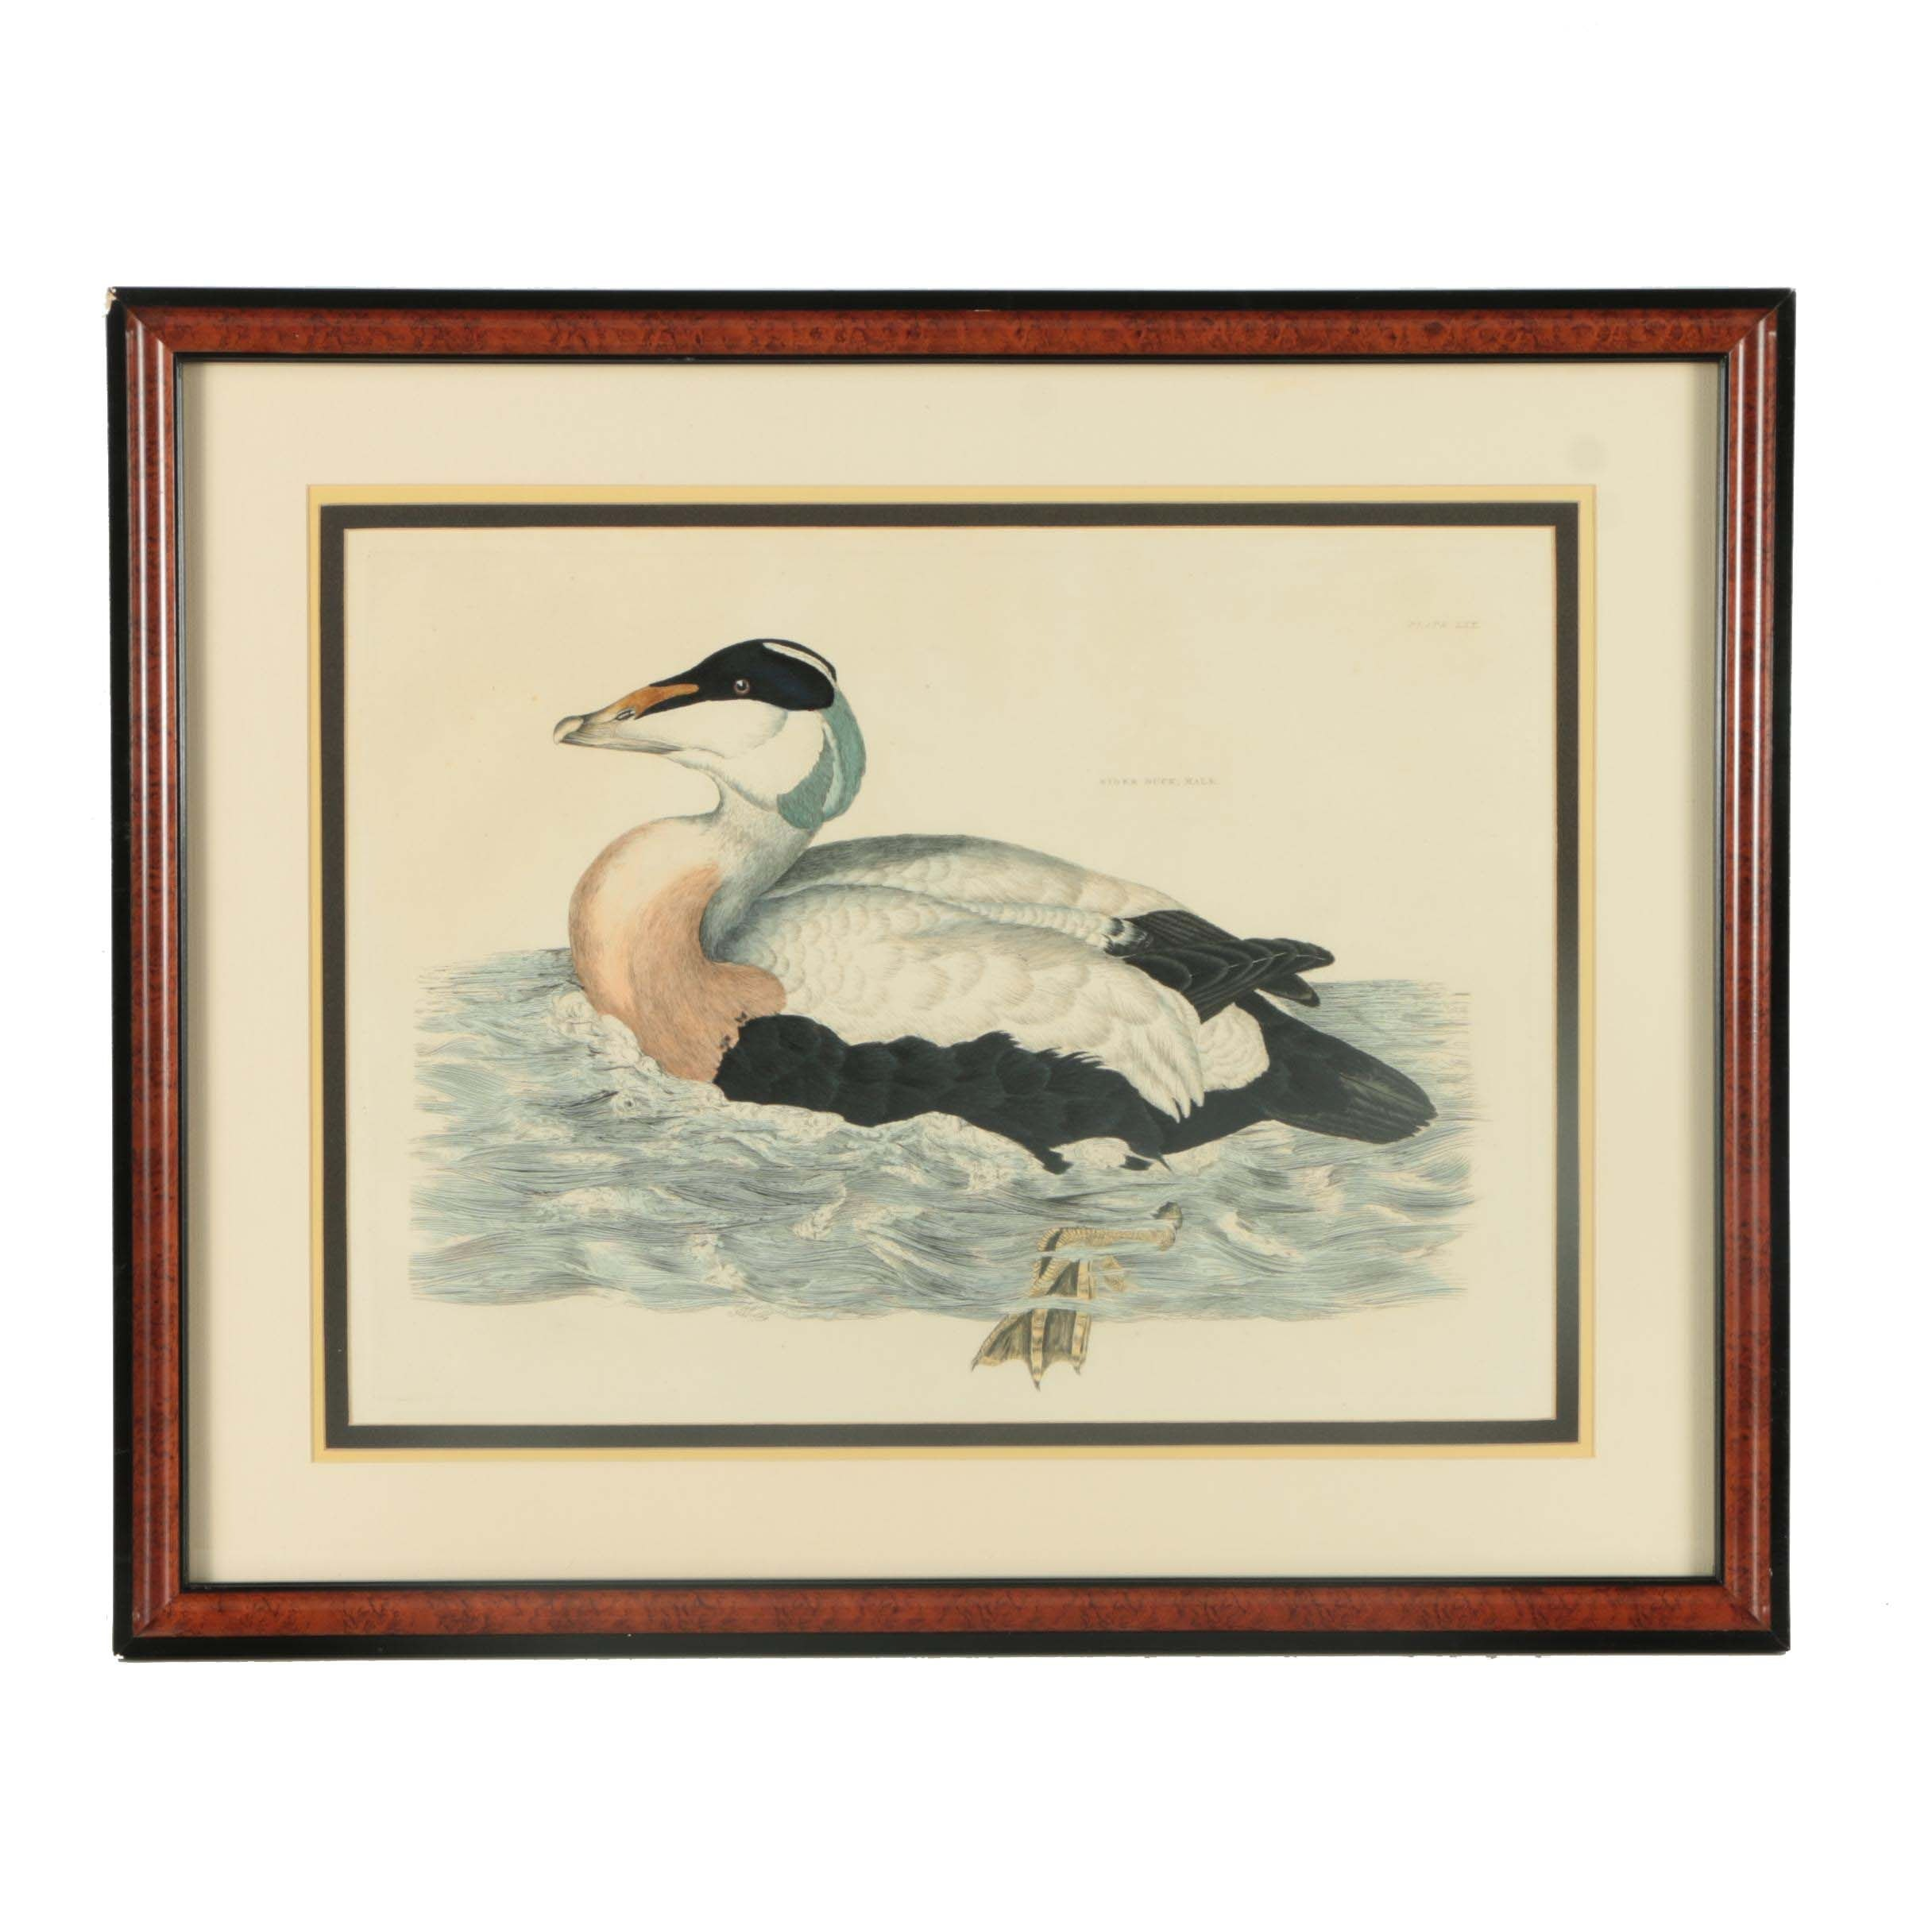 "Prideaux John Selby Hand-colored Drypoint Engraving on Paper ""Eider Duck, Male"""